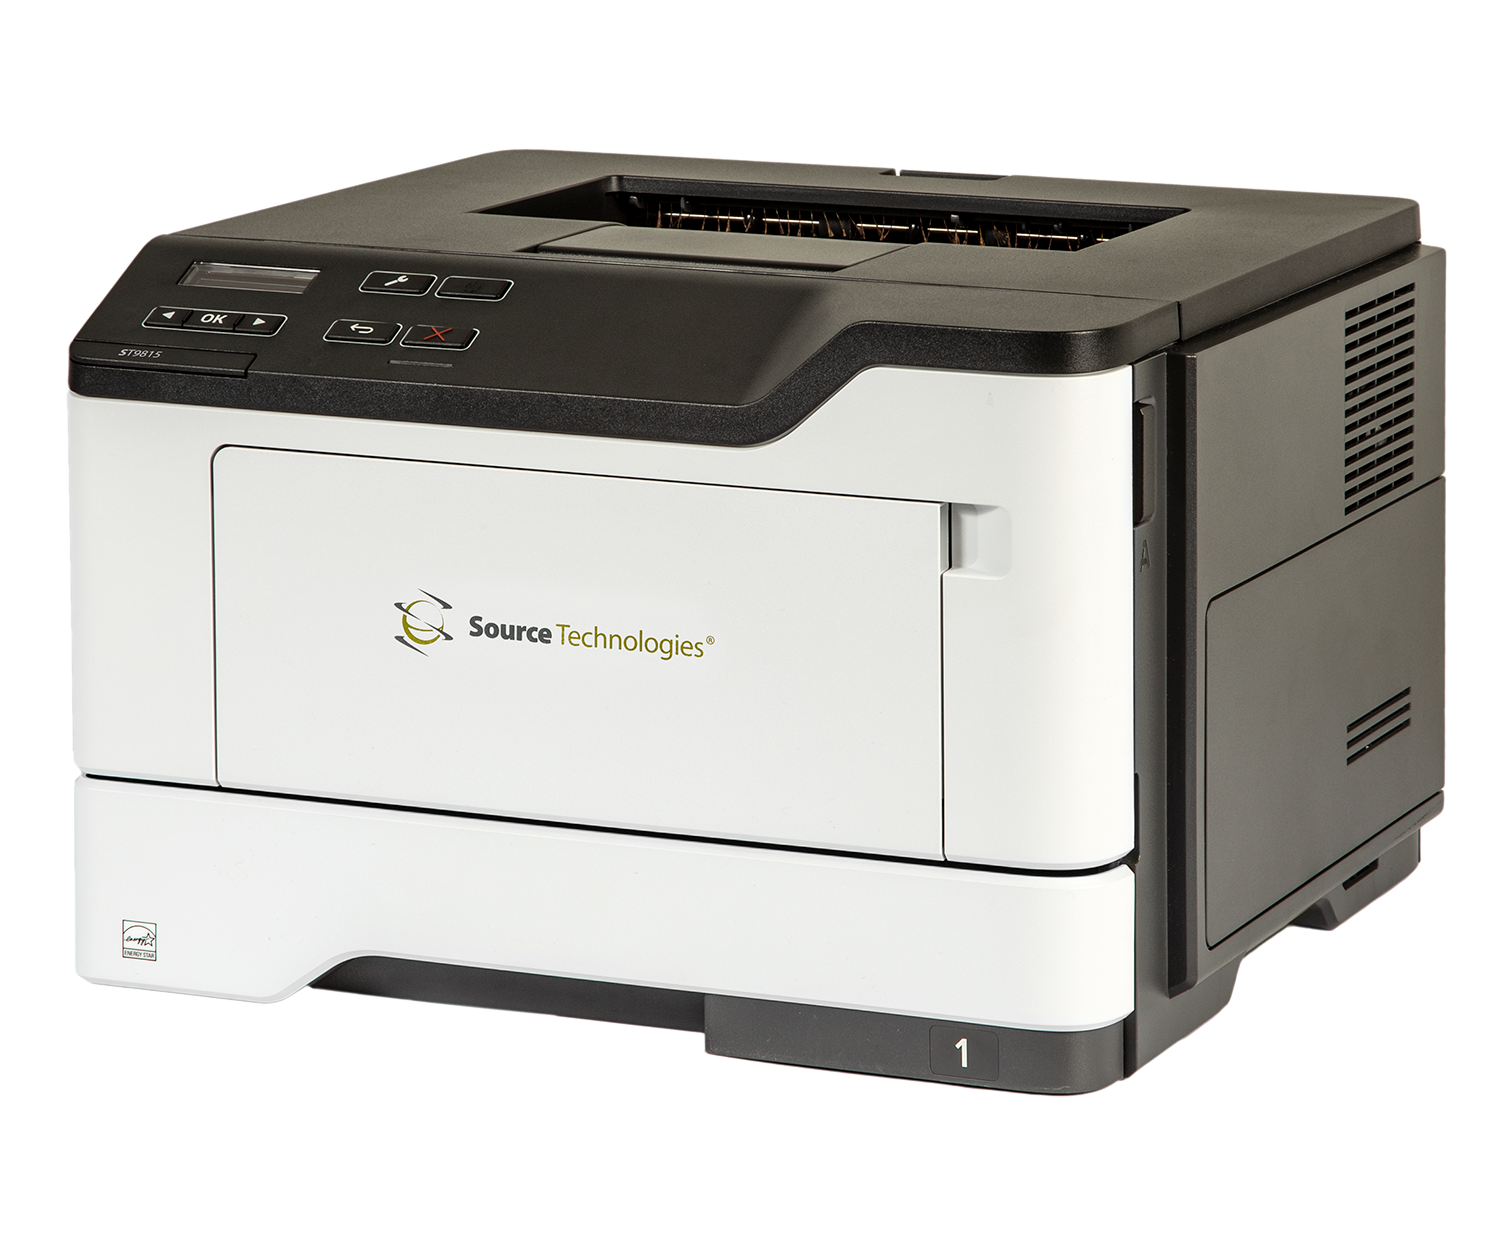 Source Technologies ST9815 MICR Check Printer